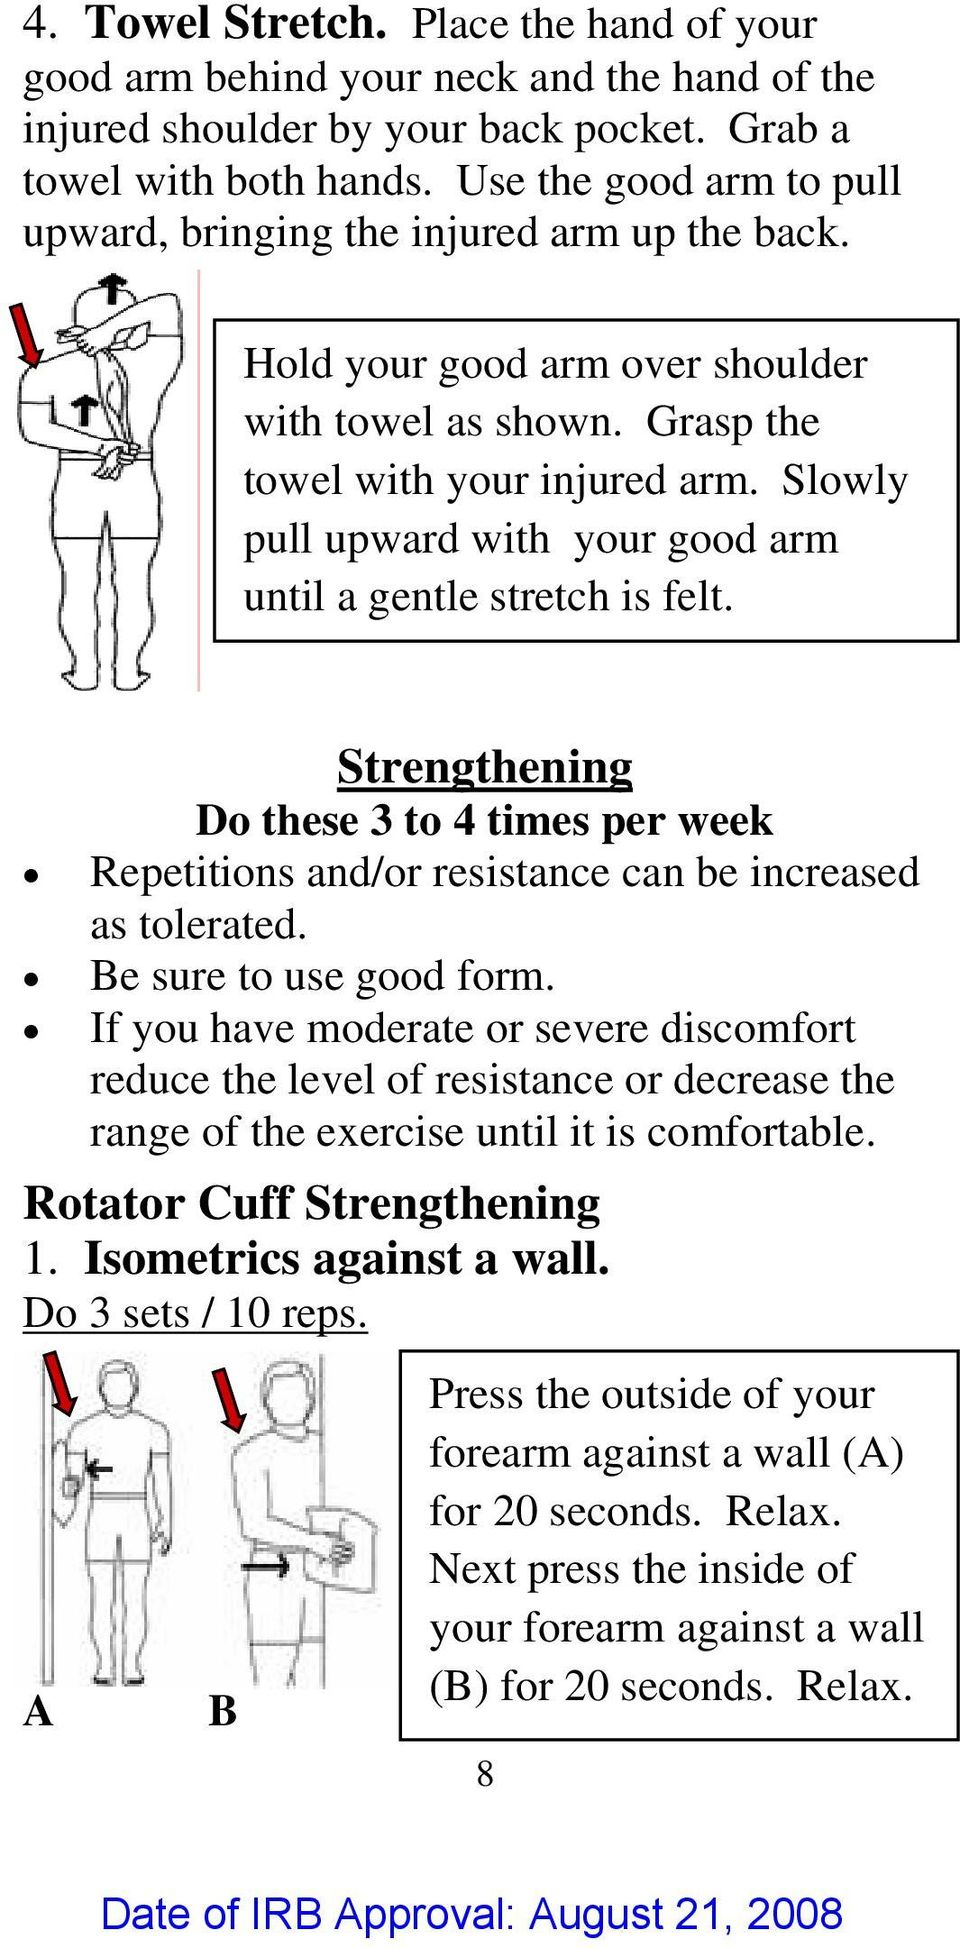 Slowly pull upward with your good arm until a gentle stretch is felt. Strengthening Do these 3 to 4 times per week Repetitions and/or resistance can be increased as tolerated.